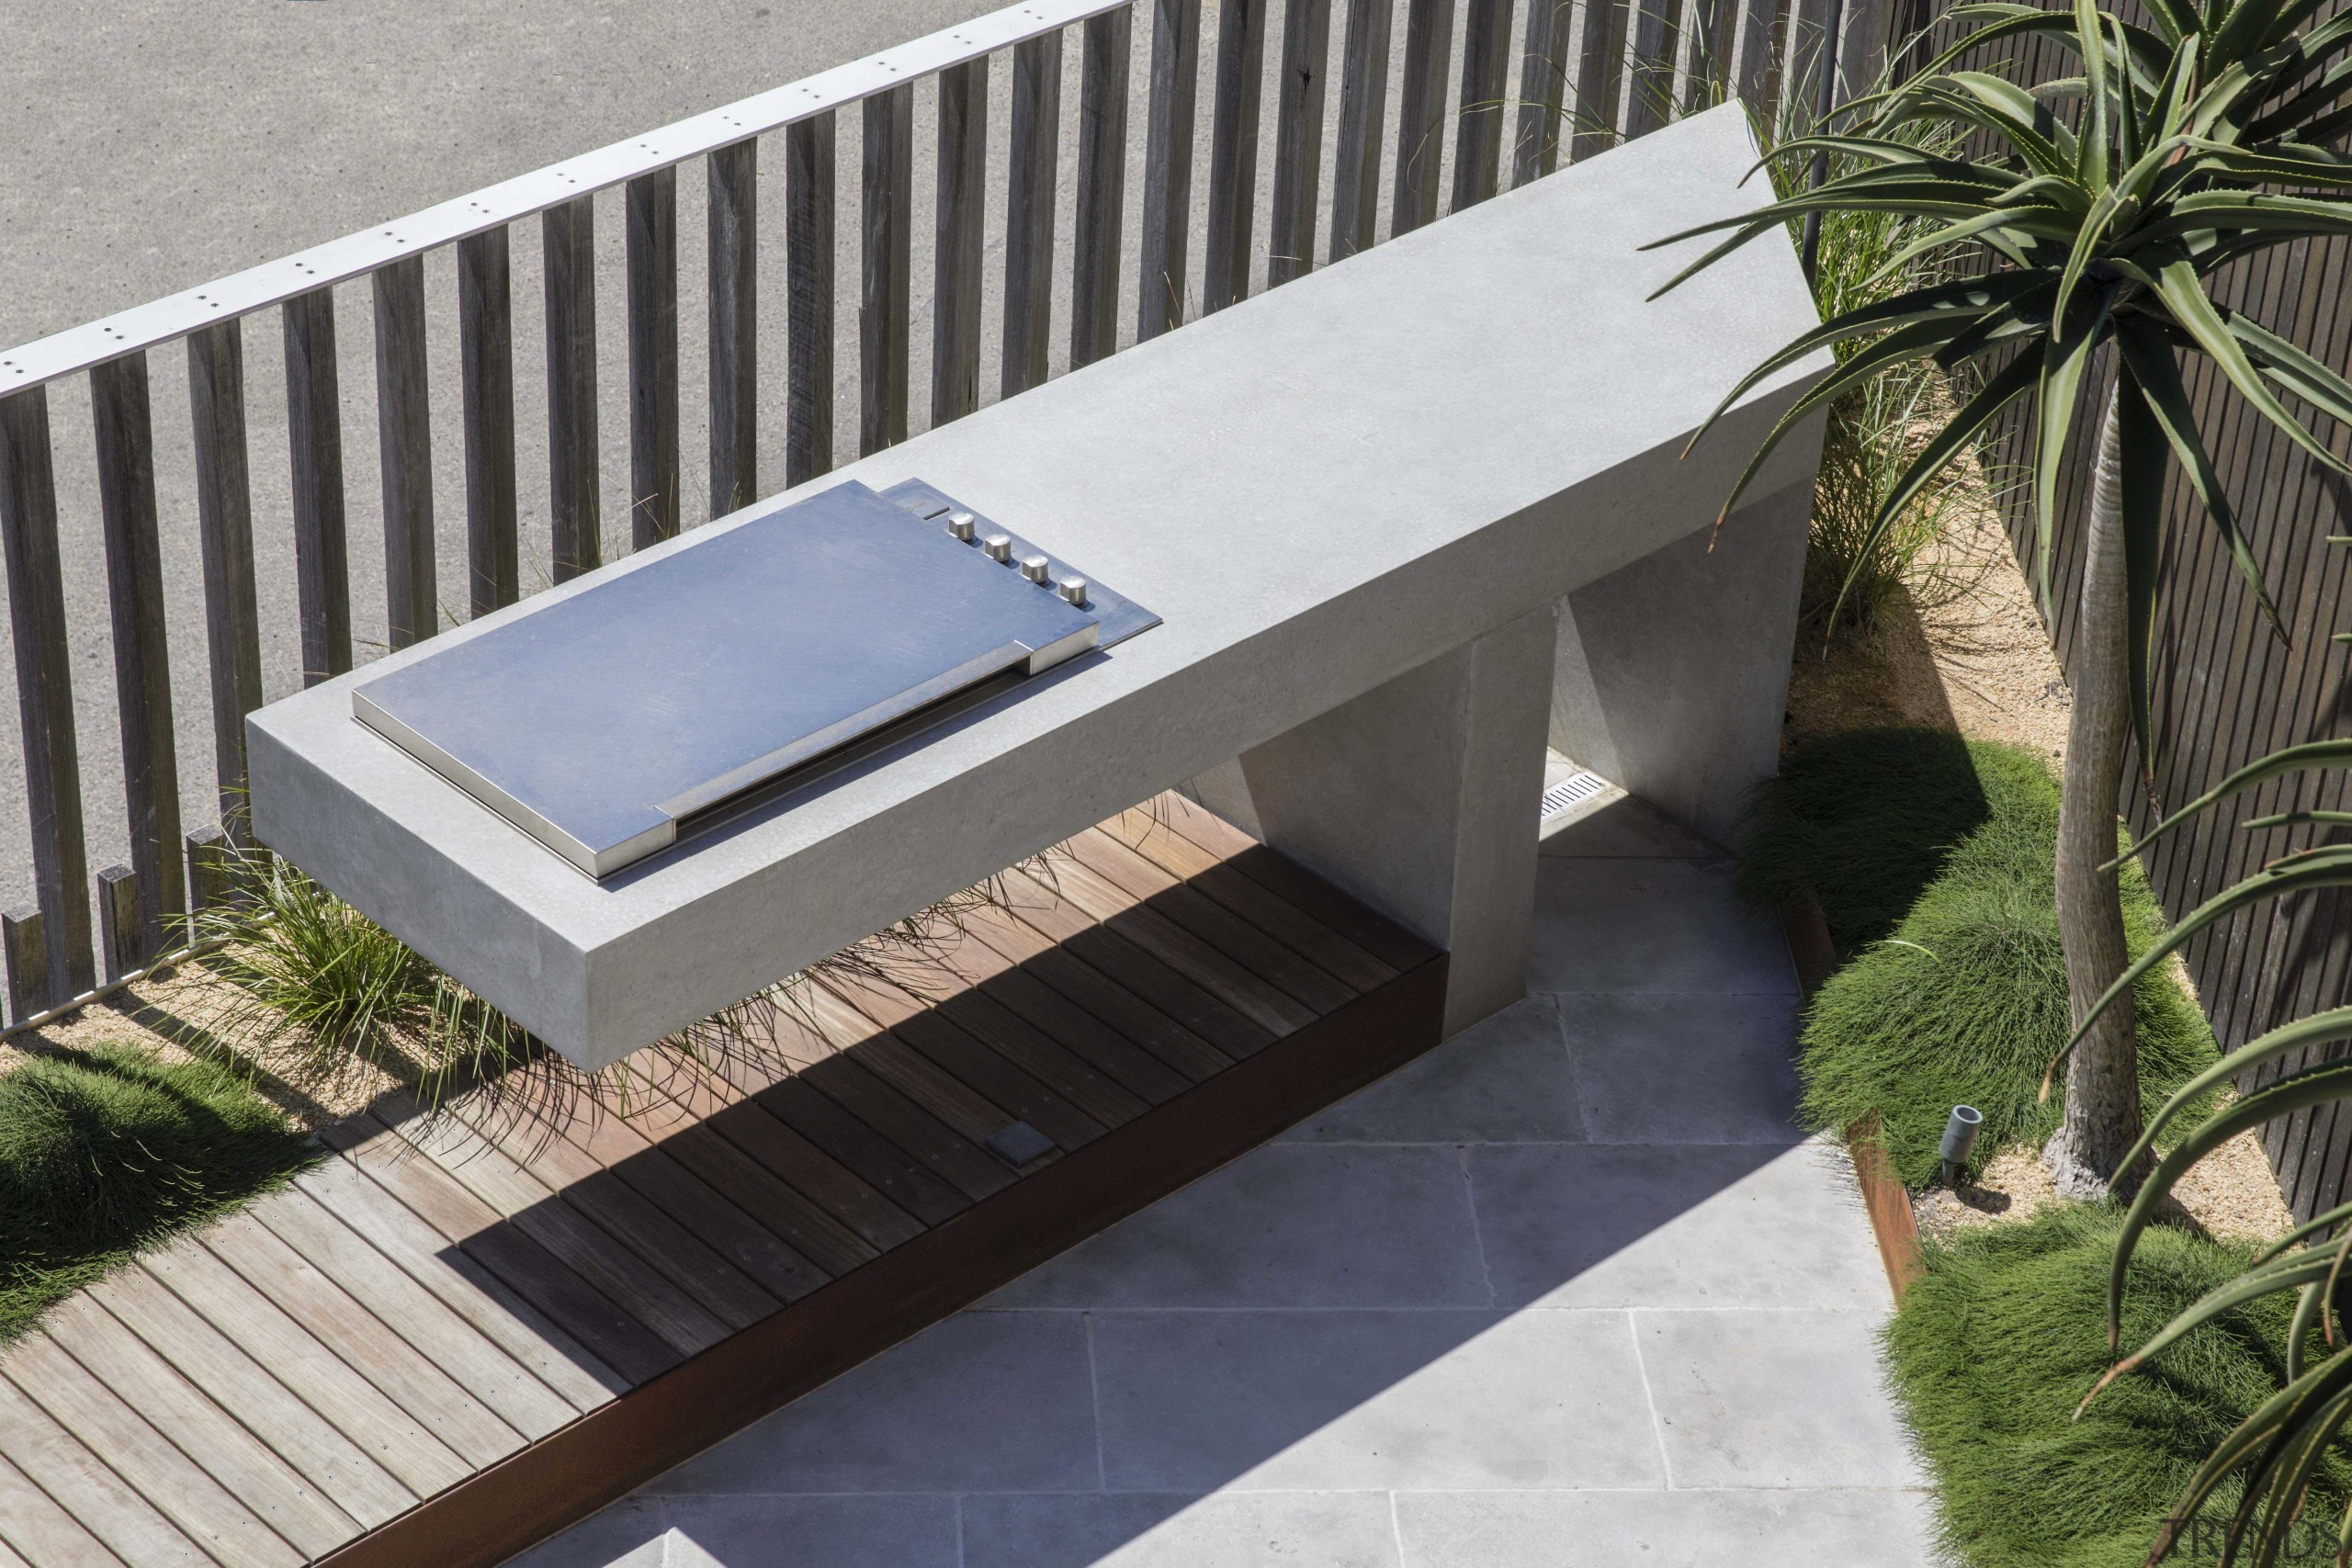 5 top tips for a green rooftop oasis architecture, building, concrete, facade, floor, furniture, house, plant, plant community, property, real estate, rectangle, roof, table, urban design, gray, black